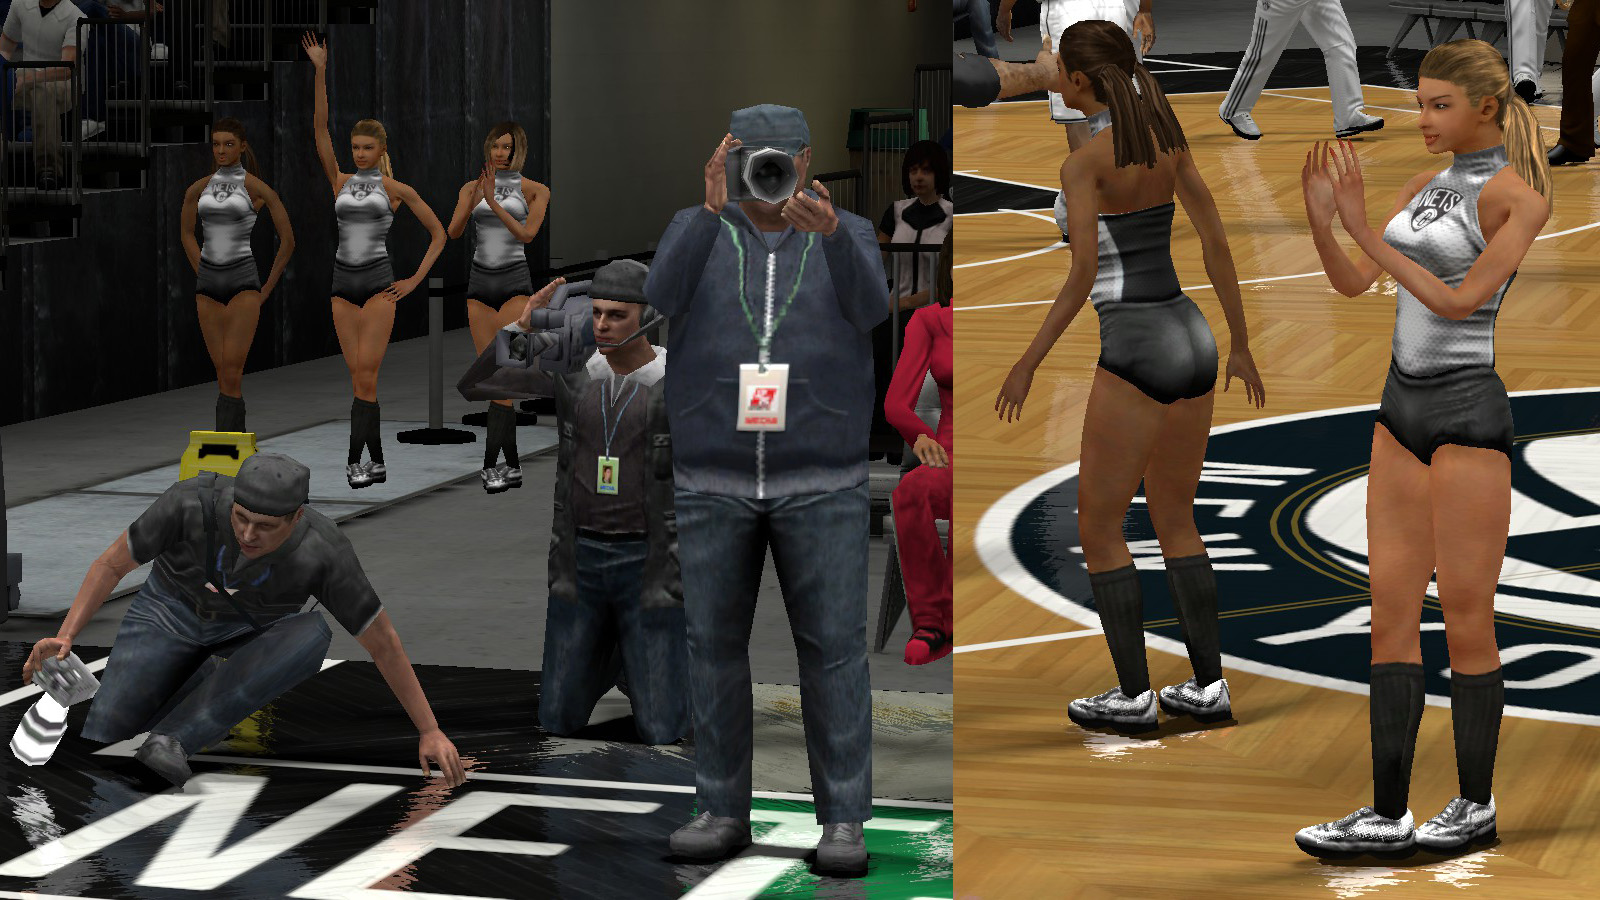 T-Neck's Retextured 2K13 Sideline Characters